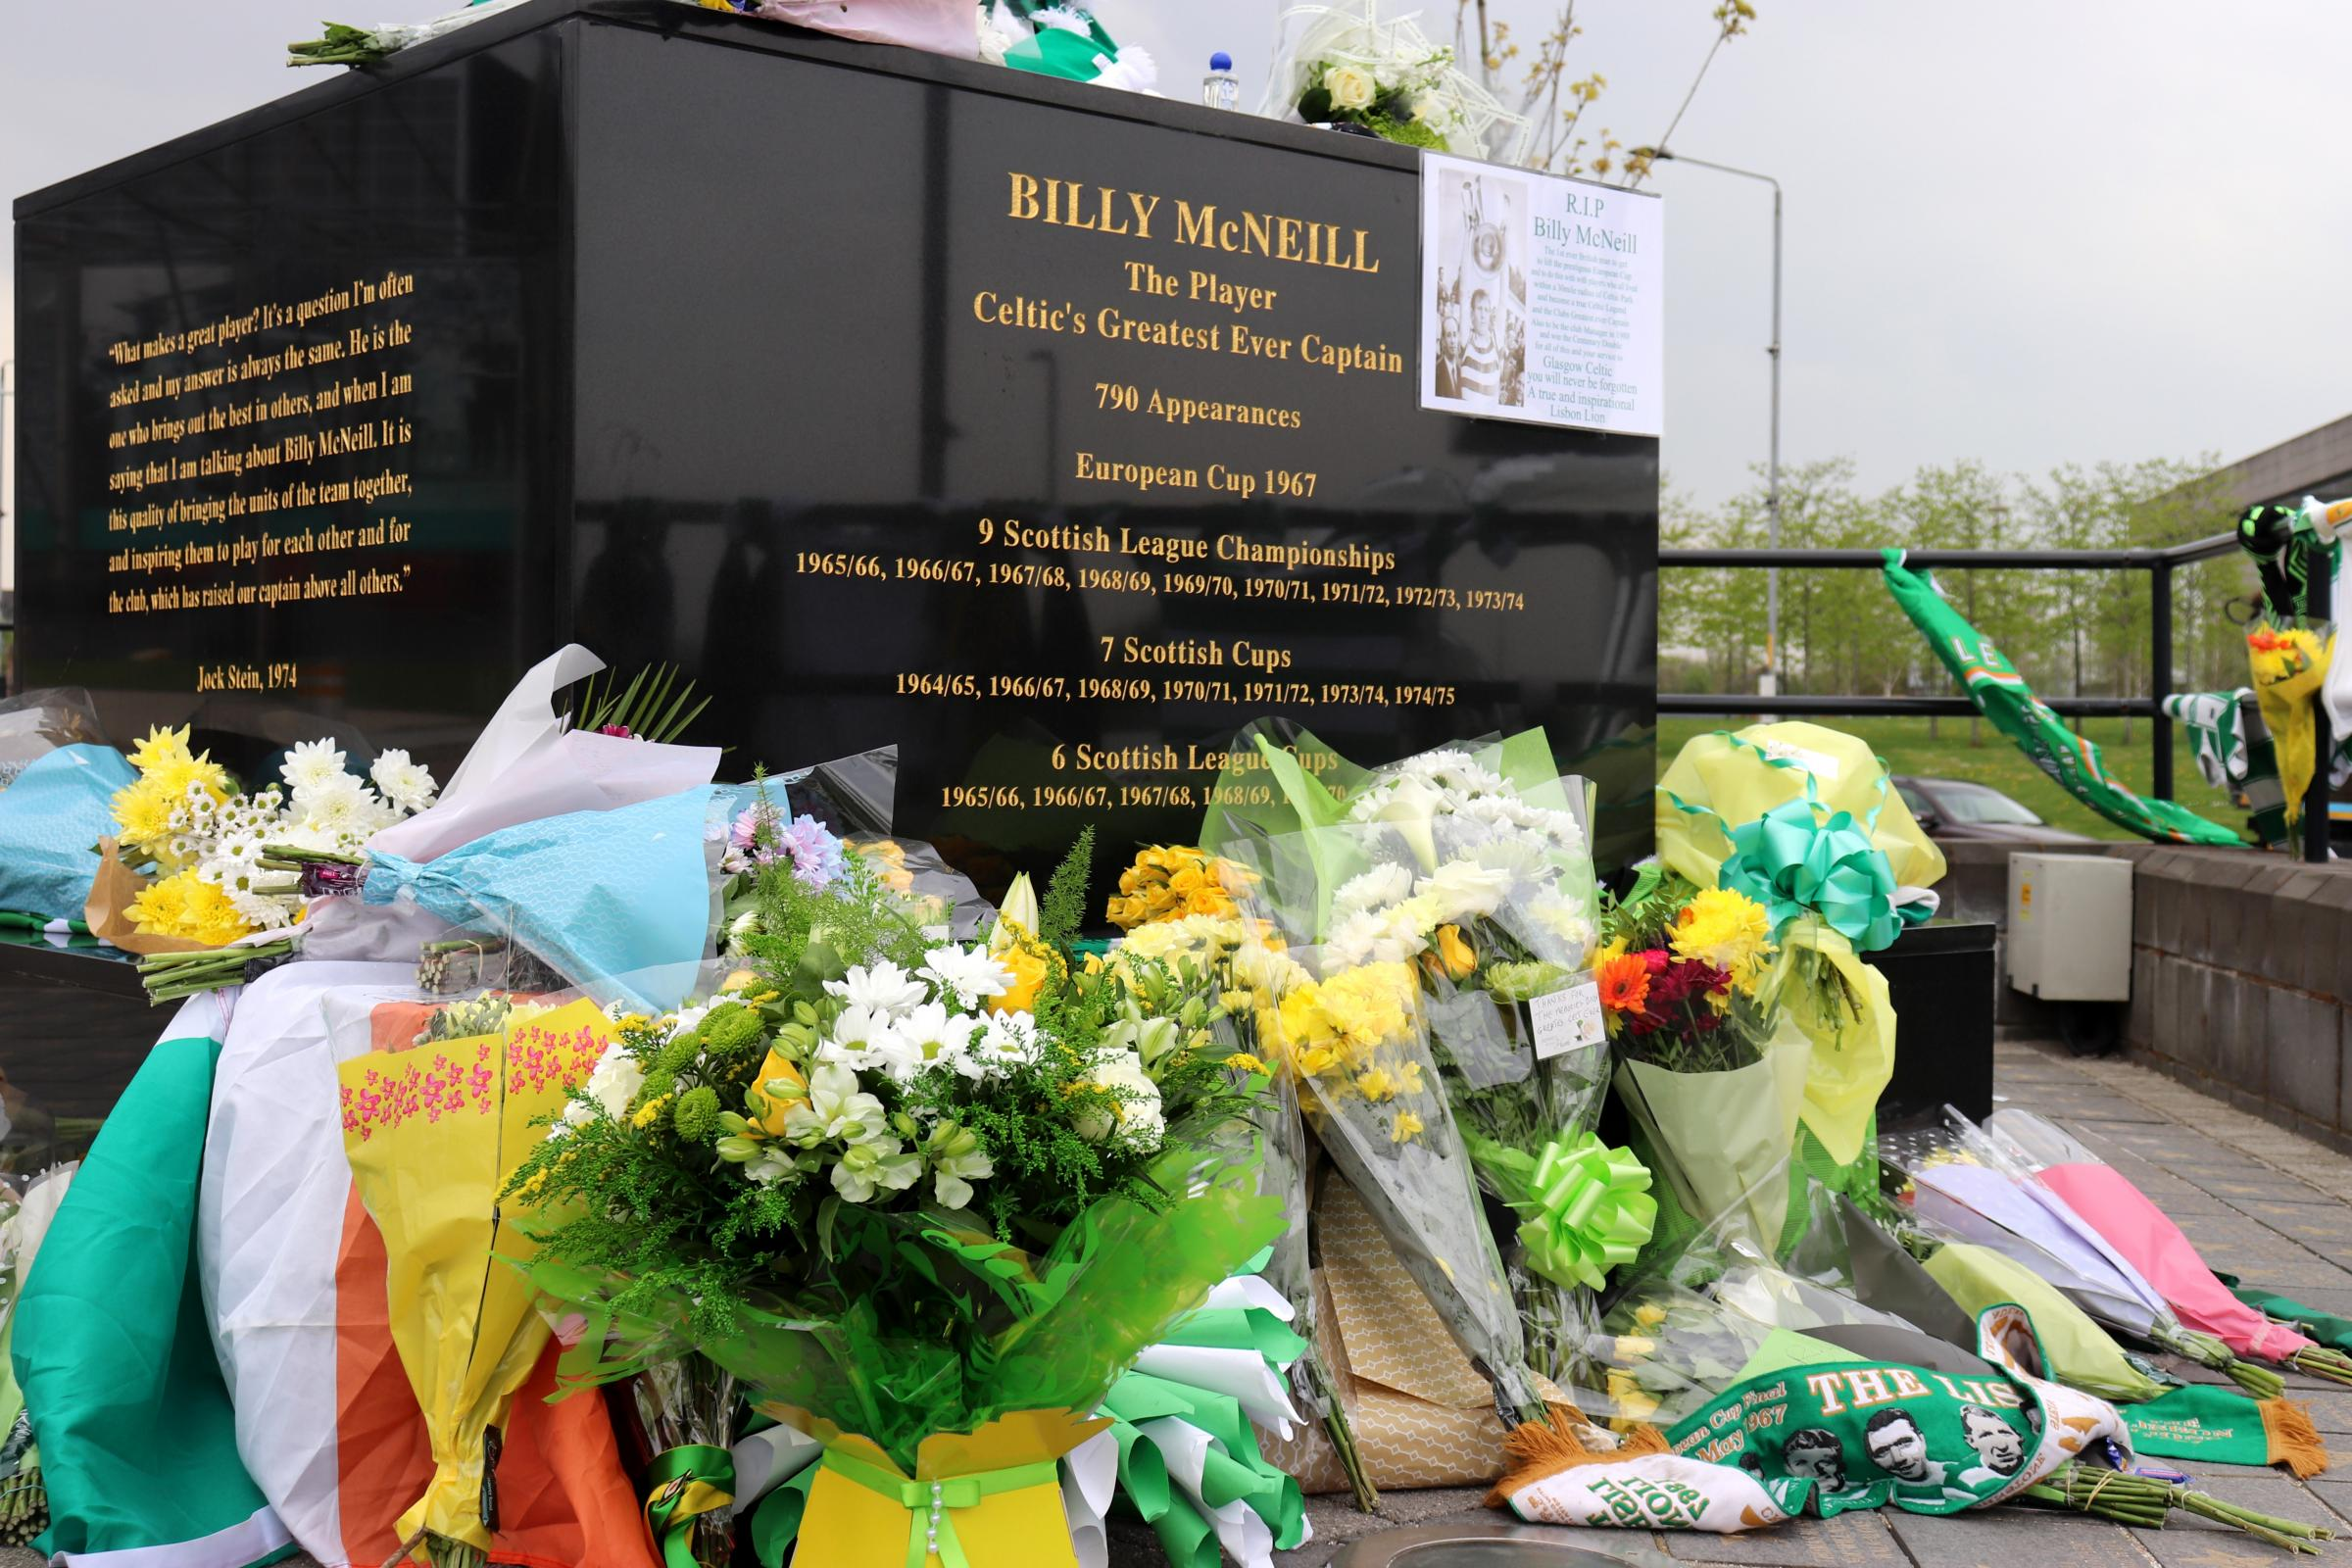 Tributes at Billy McNeill's statue